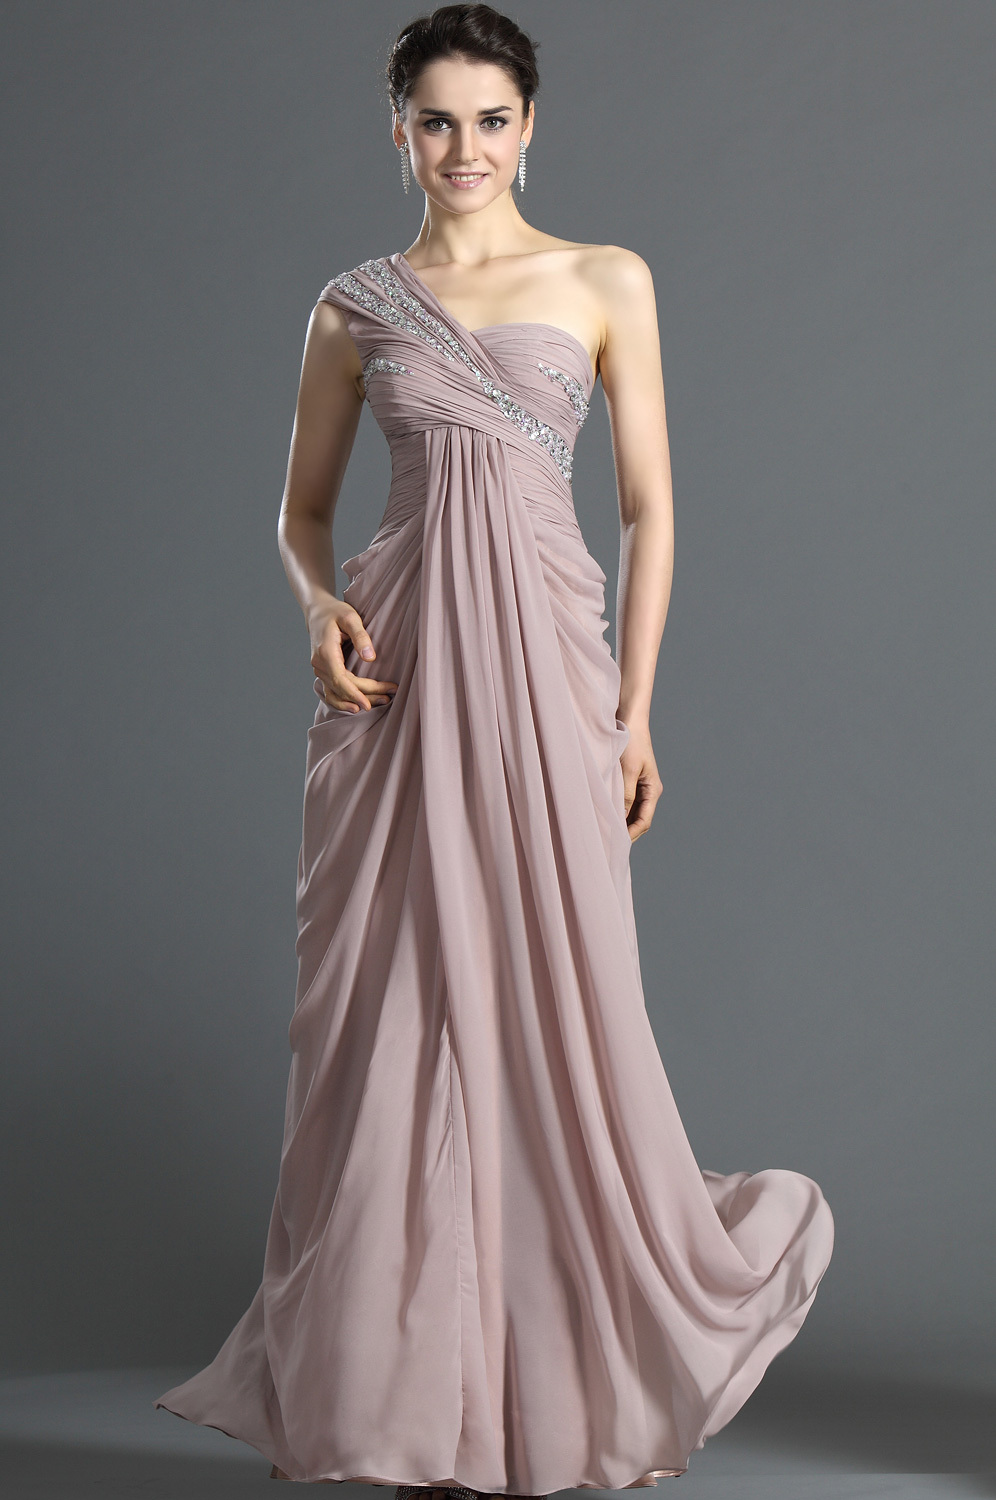 Compare Prices on Full Length Gowns- Online Shopping/Buy Low Price ...